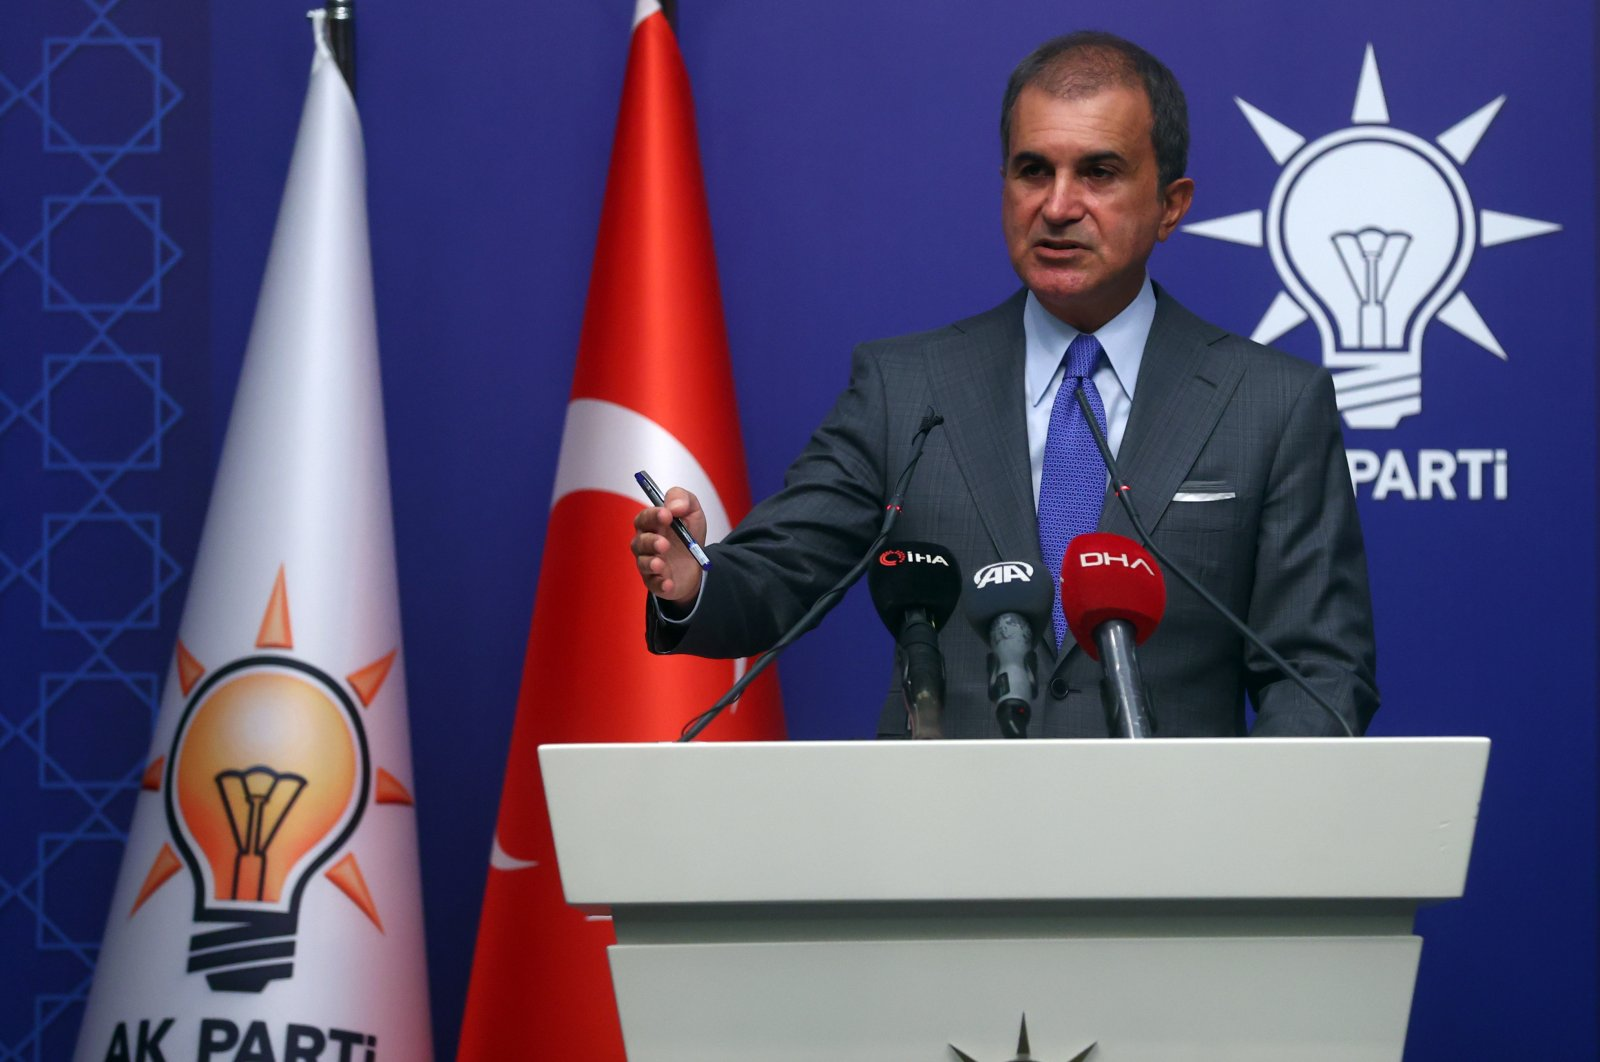 AKParty spokesperson Ömer Çelikspeaks during a press conference after the meeting of the party's Central Executive Board headed by President Recep Tayyip Erdoğan in the capital, Ankara, Turkey, Sept. 14, 2021. (AA Photo)